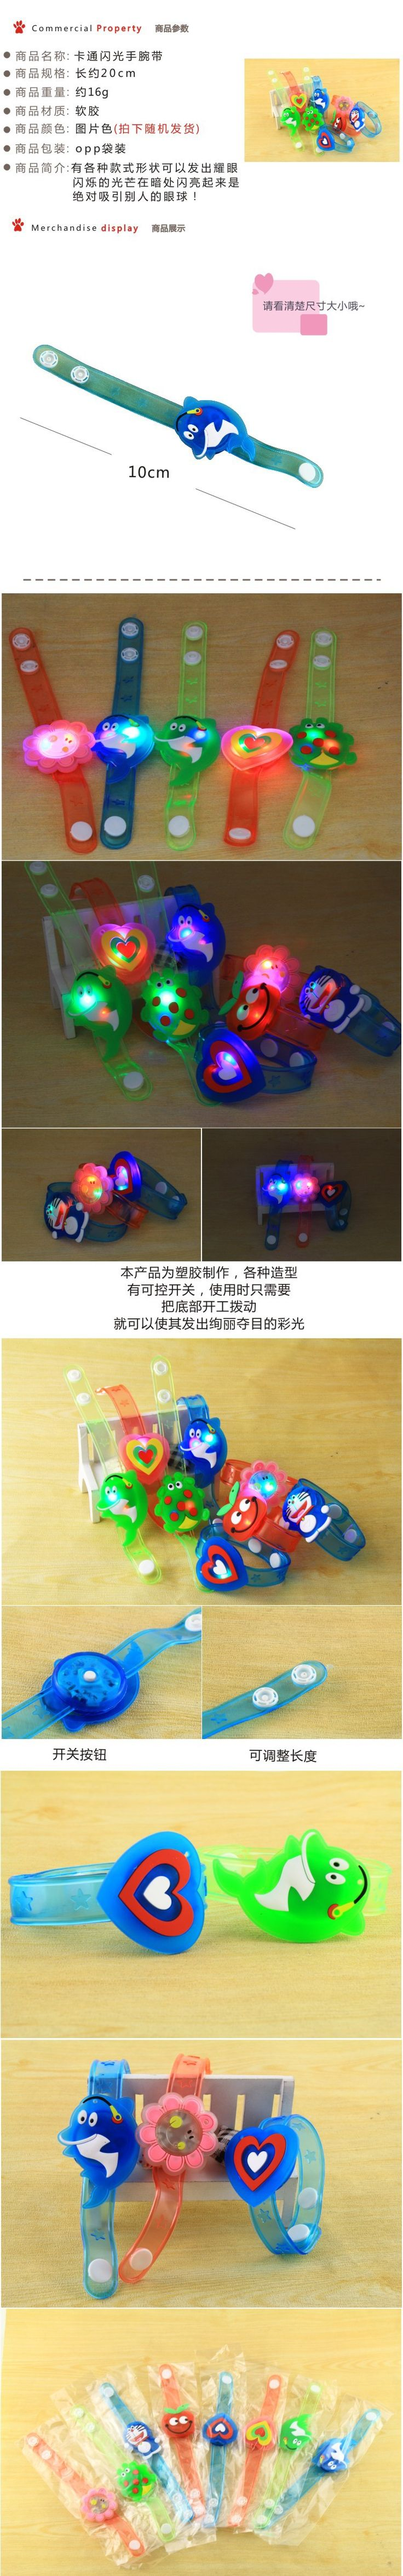 Wholesale Factory Direct Sales cute Cartoon Style Light-emitting Watches Children gifts silicone kid's watches 200pcs/lot - http://www.99bones.com/products/wholesale-factory-direct-sales-cute-cartoon-style-light-emitting-watches-children-gifts-silicone-kids-watches-200pcslot/?http://www.aliexpress3.com - [xlmodel]-[photo]-[0000] Photos List [xlmodel]-[custom]-[9310] Note: Thank you for your time! **You can make the payment by MasterCard, Visa or Telegraphic Transfer,